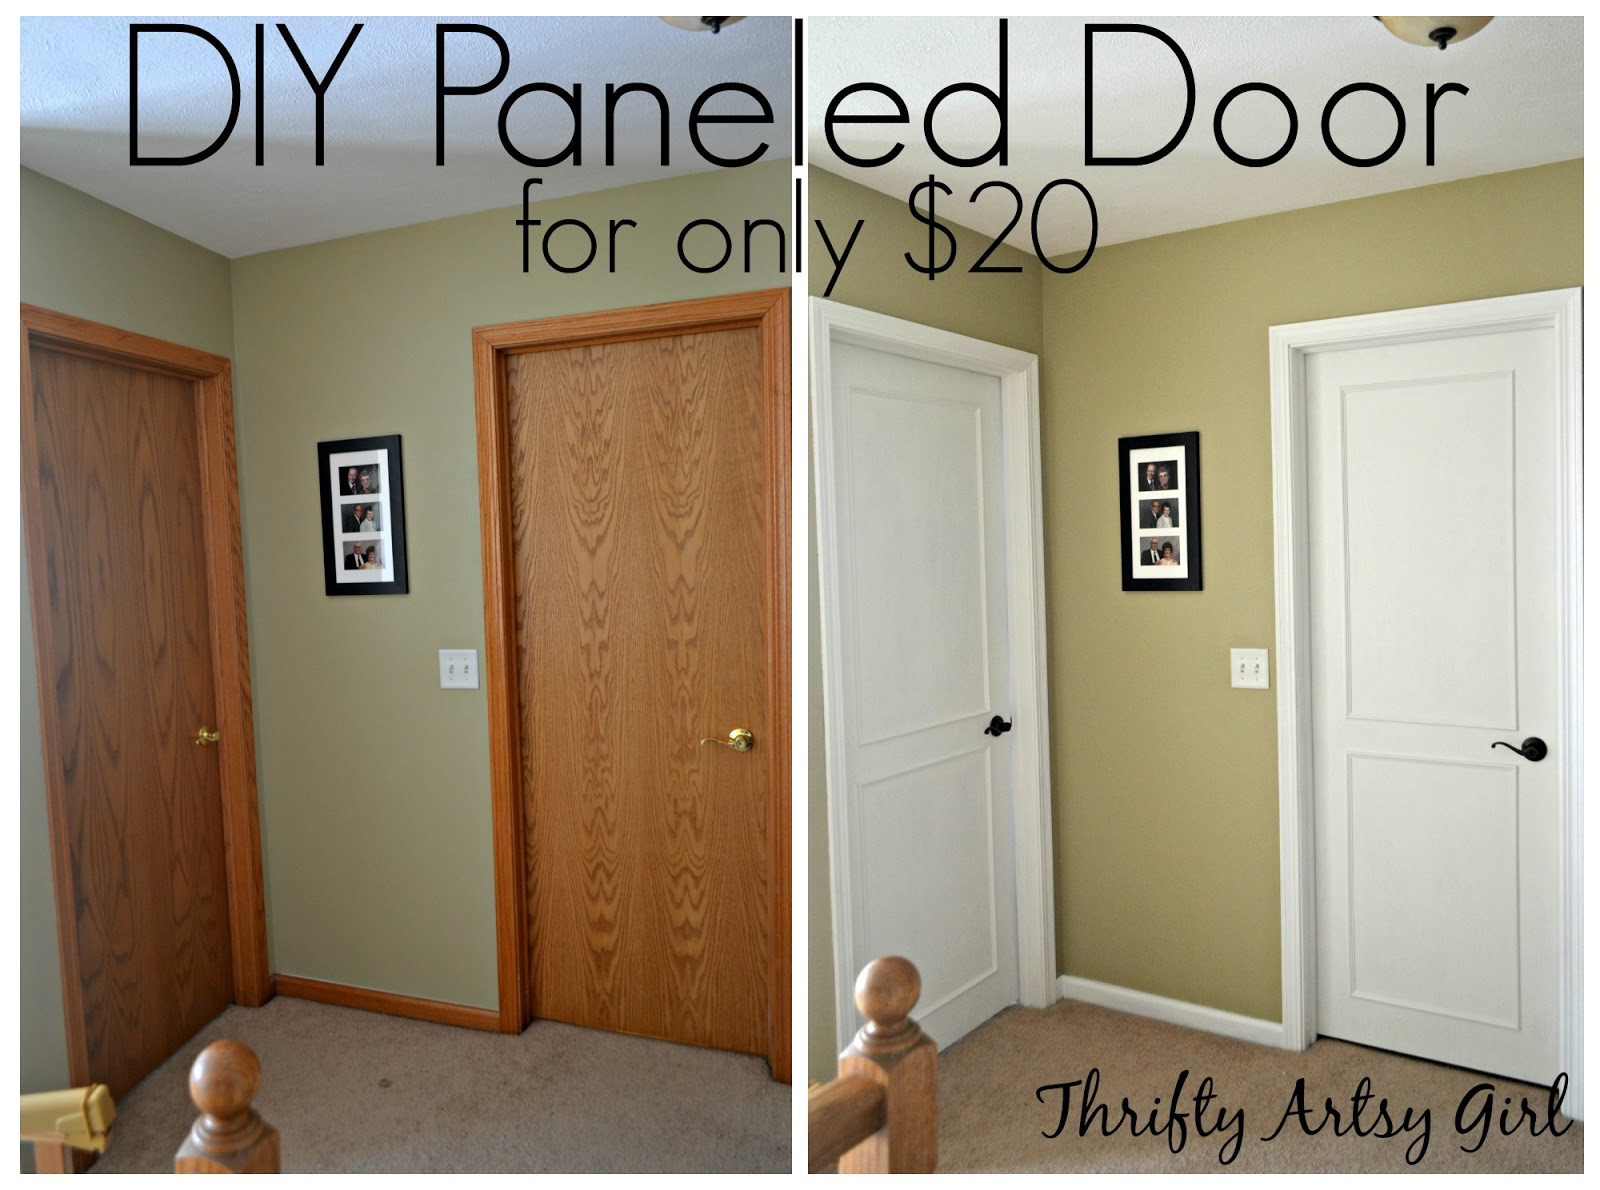 Thrifty artsy girl from hollow core bore to a beautiful updated door diy slab door makeover Best white paint for interior doors